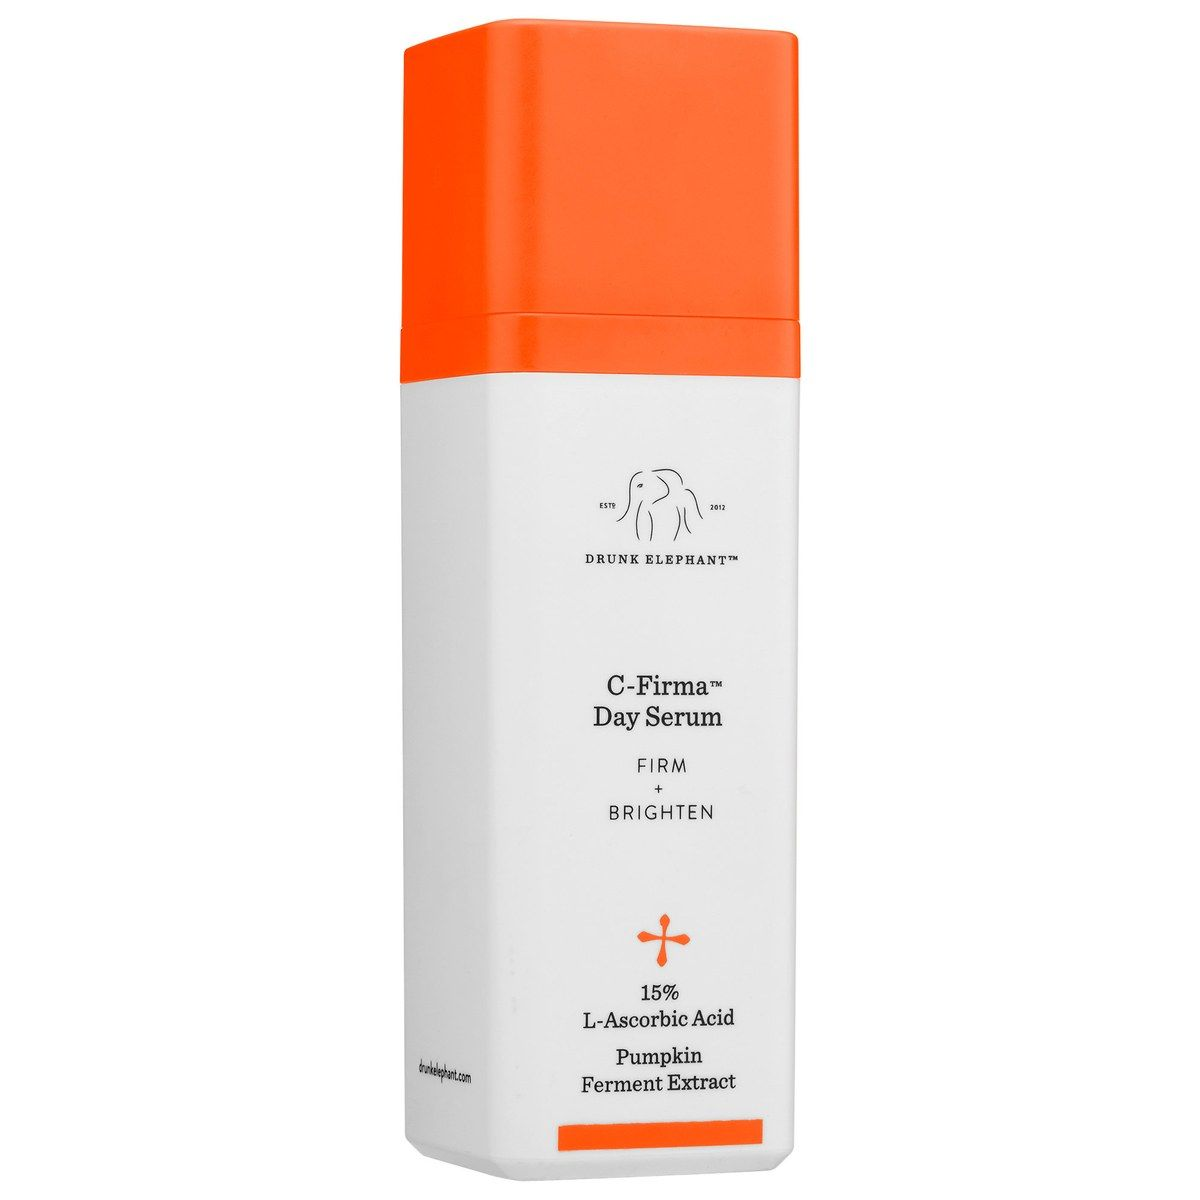 This daytime serum carries its weight in gold—that is to say, its sophisticated formulation of vitamin C, antioxidants, fruit enzymes, and chronopeptides essentially reverse-age your skin. What you see is smooth, bright and healthy-looking skin that can hold its own against free-radical damage. This line is geared toward sensitive skin types and seems to be wholly staying more than afloat in the serums game just by word of mouth alone (counting one more mouth here).